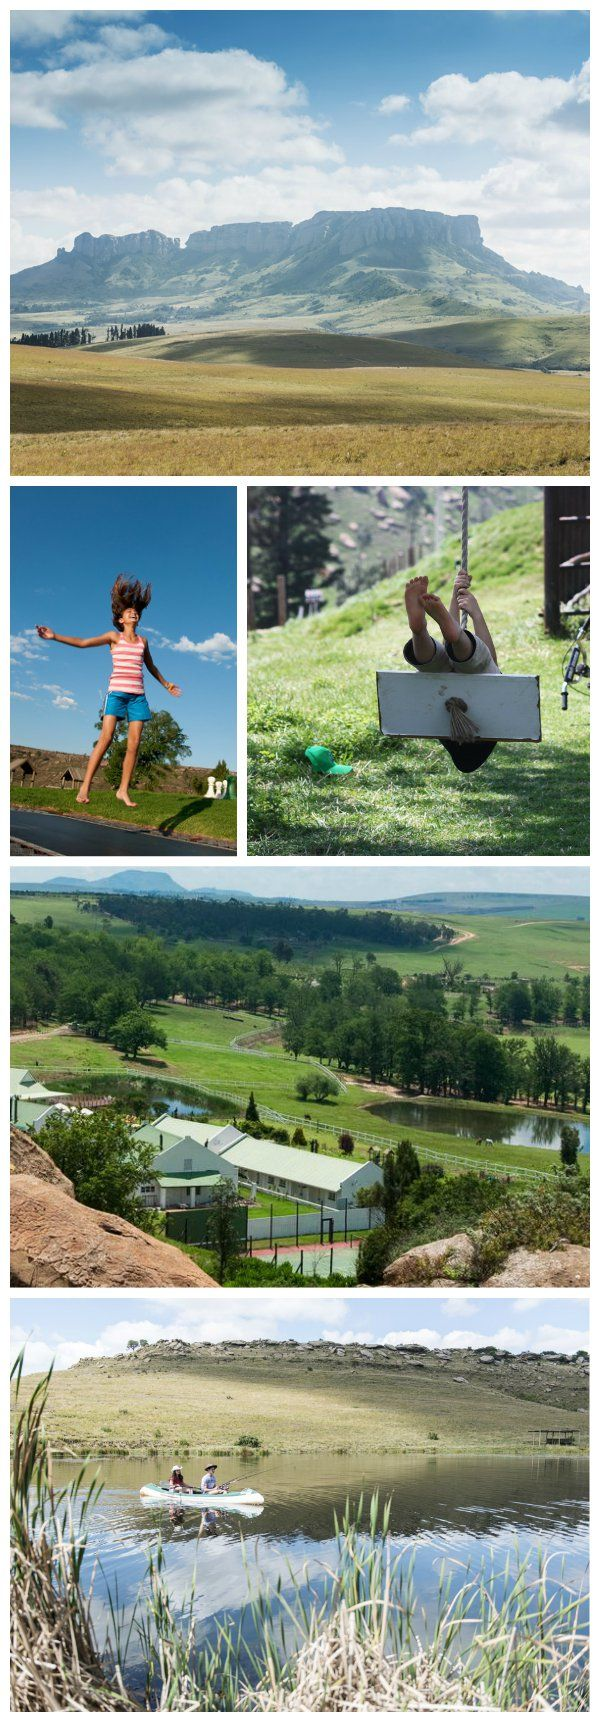 Whether rain or shine, summer in the #Drakensberg always promises plenty of entertaining activities.  #accommodation